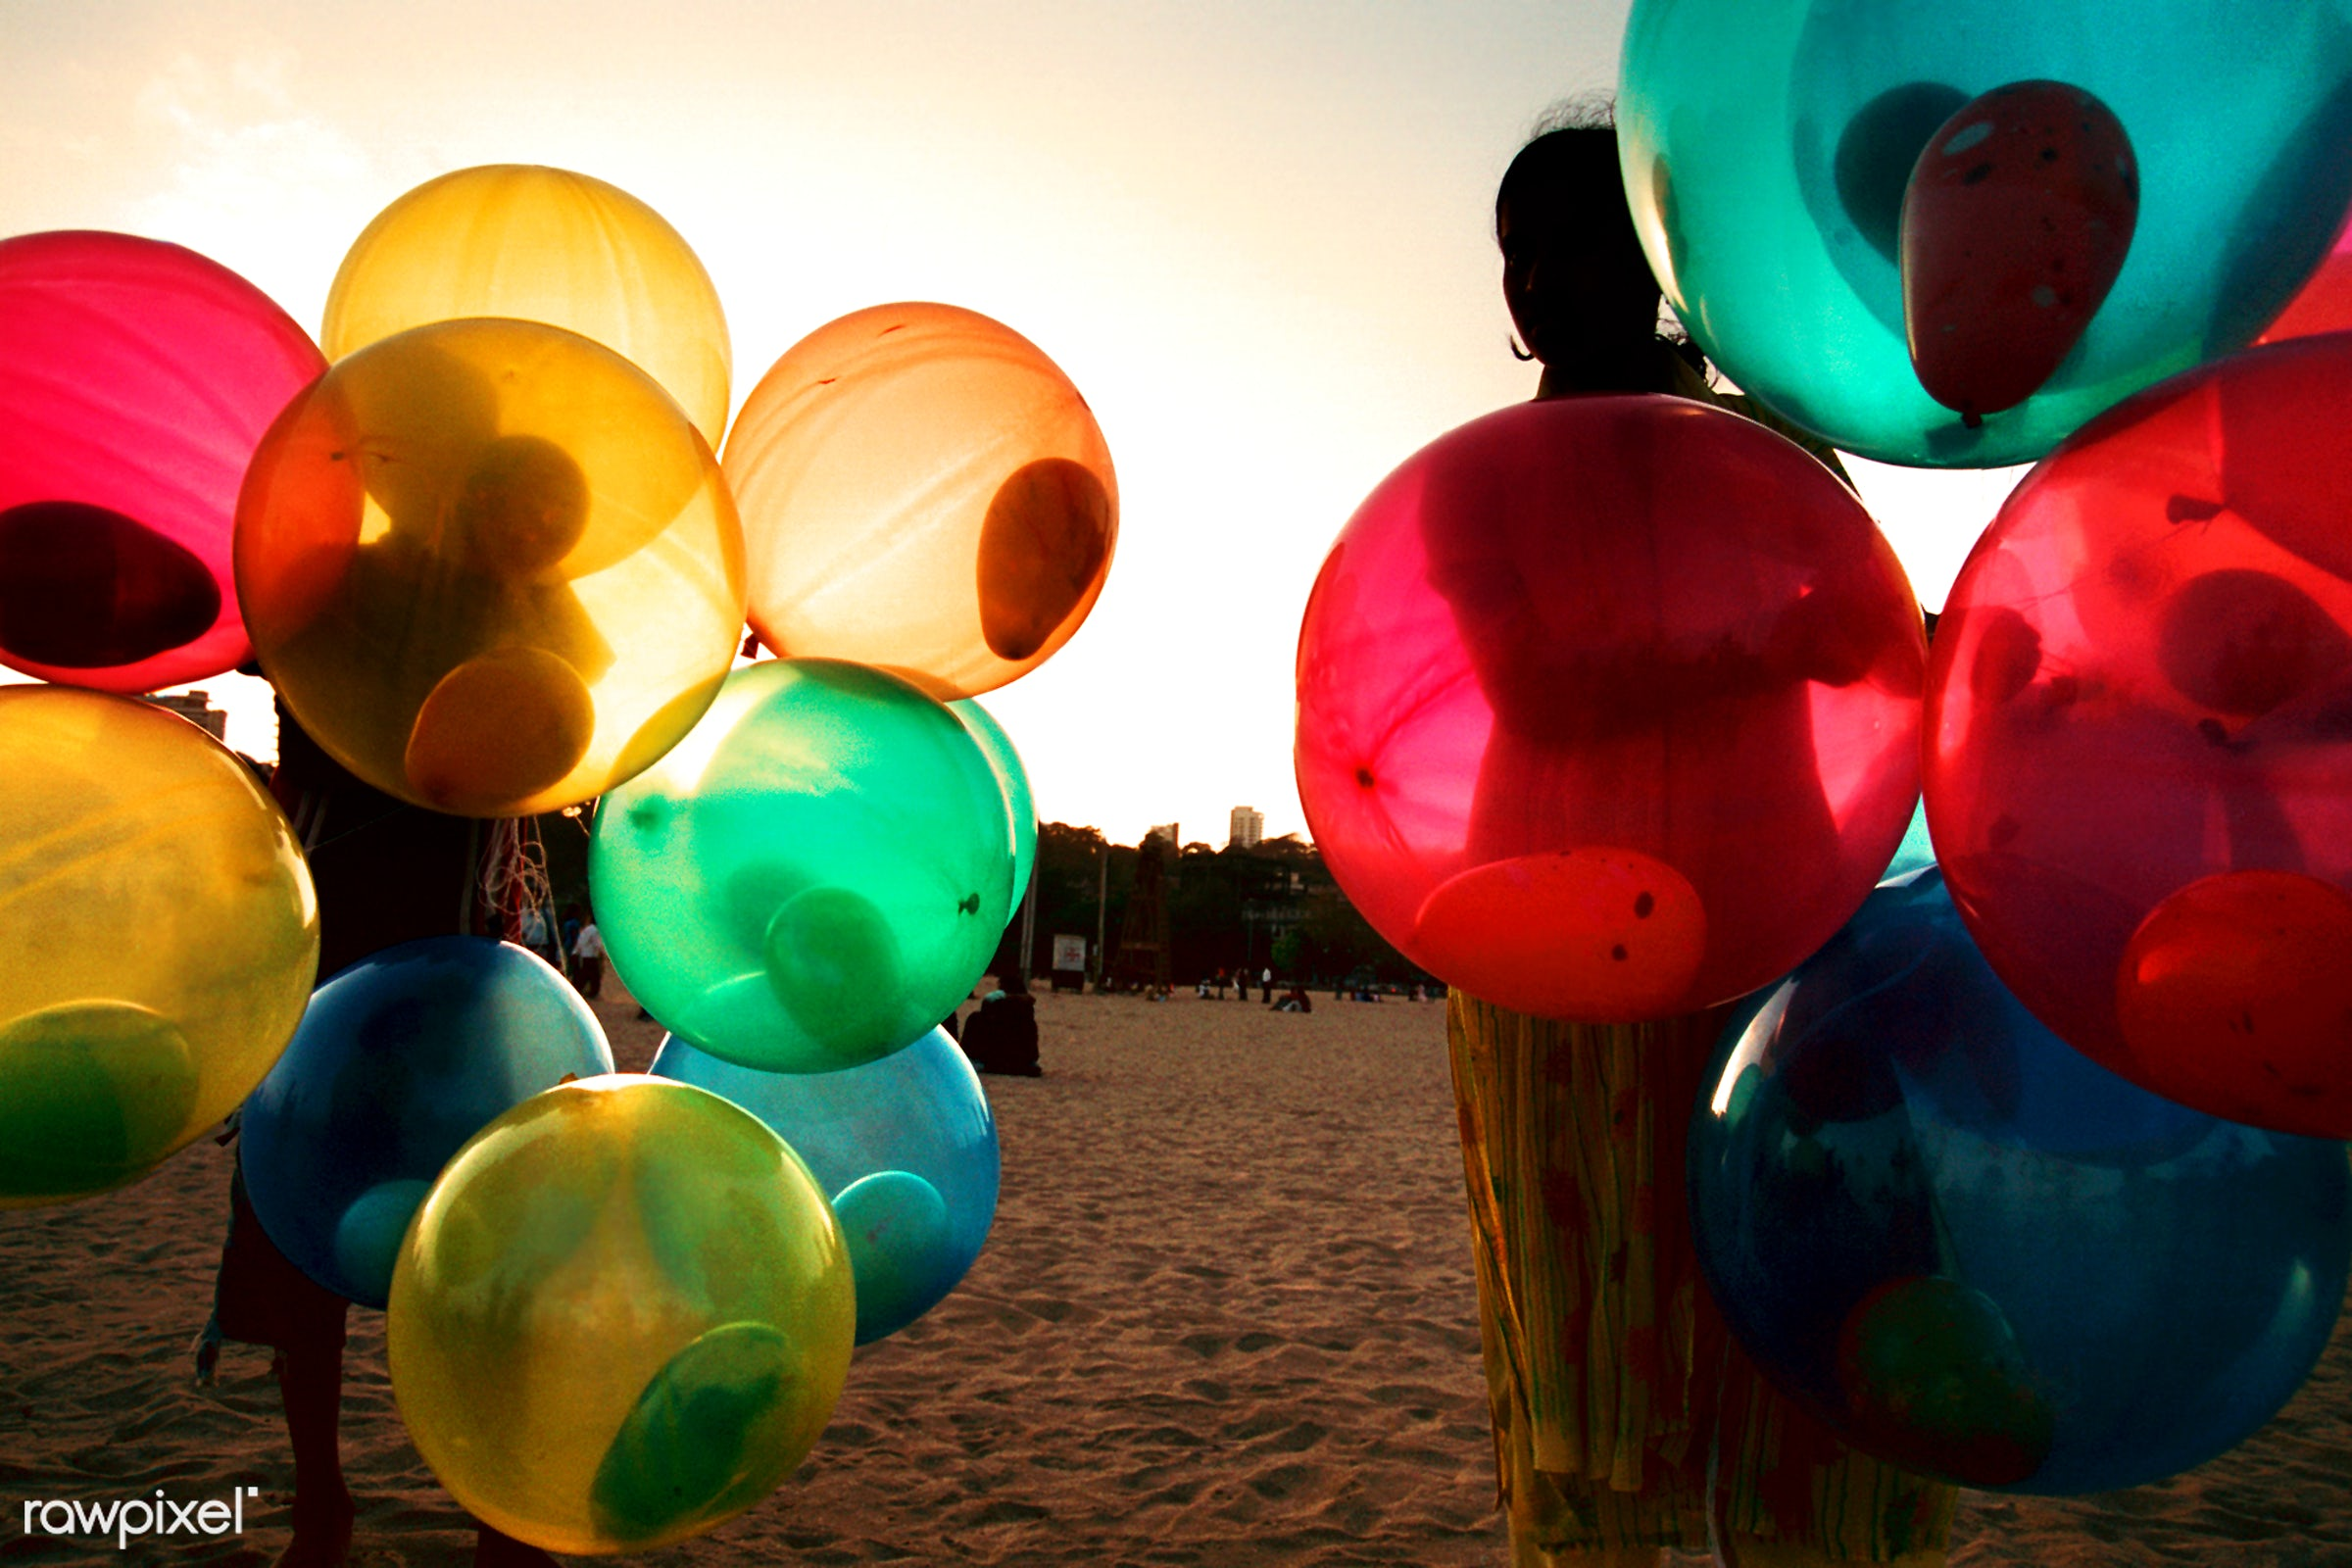 Girl on beach with colorful balloons - balloon, beach, bouquet, bright, brightly lit, child, color image, colorful, colors,...